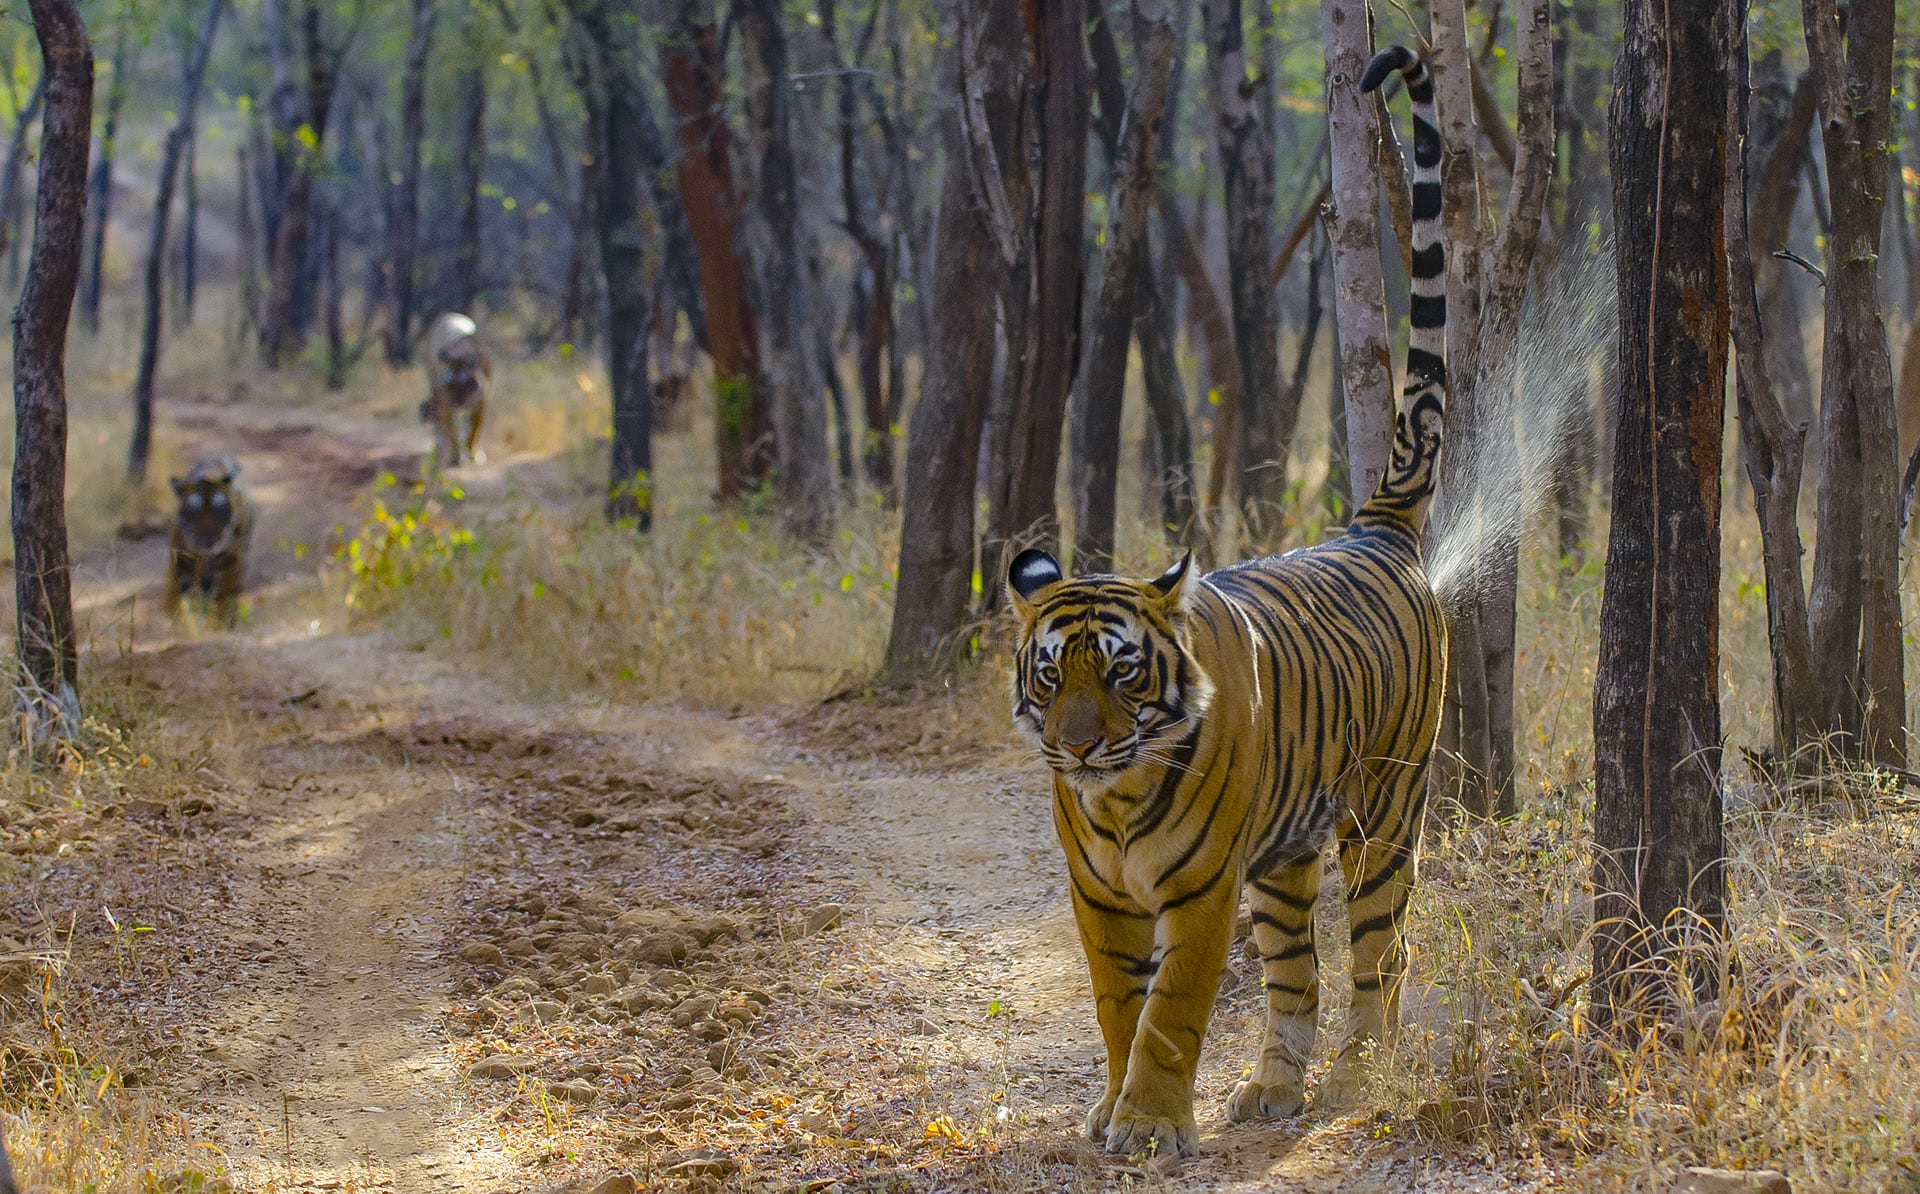 "Tigers inform each other of their whereabouts through complex scent markings that contain pheromones. ""They do this by spraying on trees, or any relevant spot during their regular movement through their territory,"" says Chatterjee. ""Tiger scat (poo) or scrapes (with their hind feet) also leave behind scent residues, which may function as cues to the tigers' presence."" The big cats also have a variety of calls, although we have little understanding of what these calls mean, and the messages they convey."